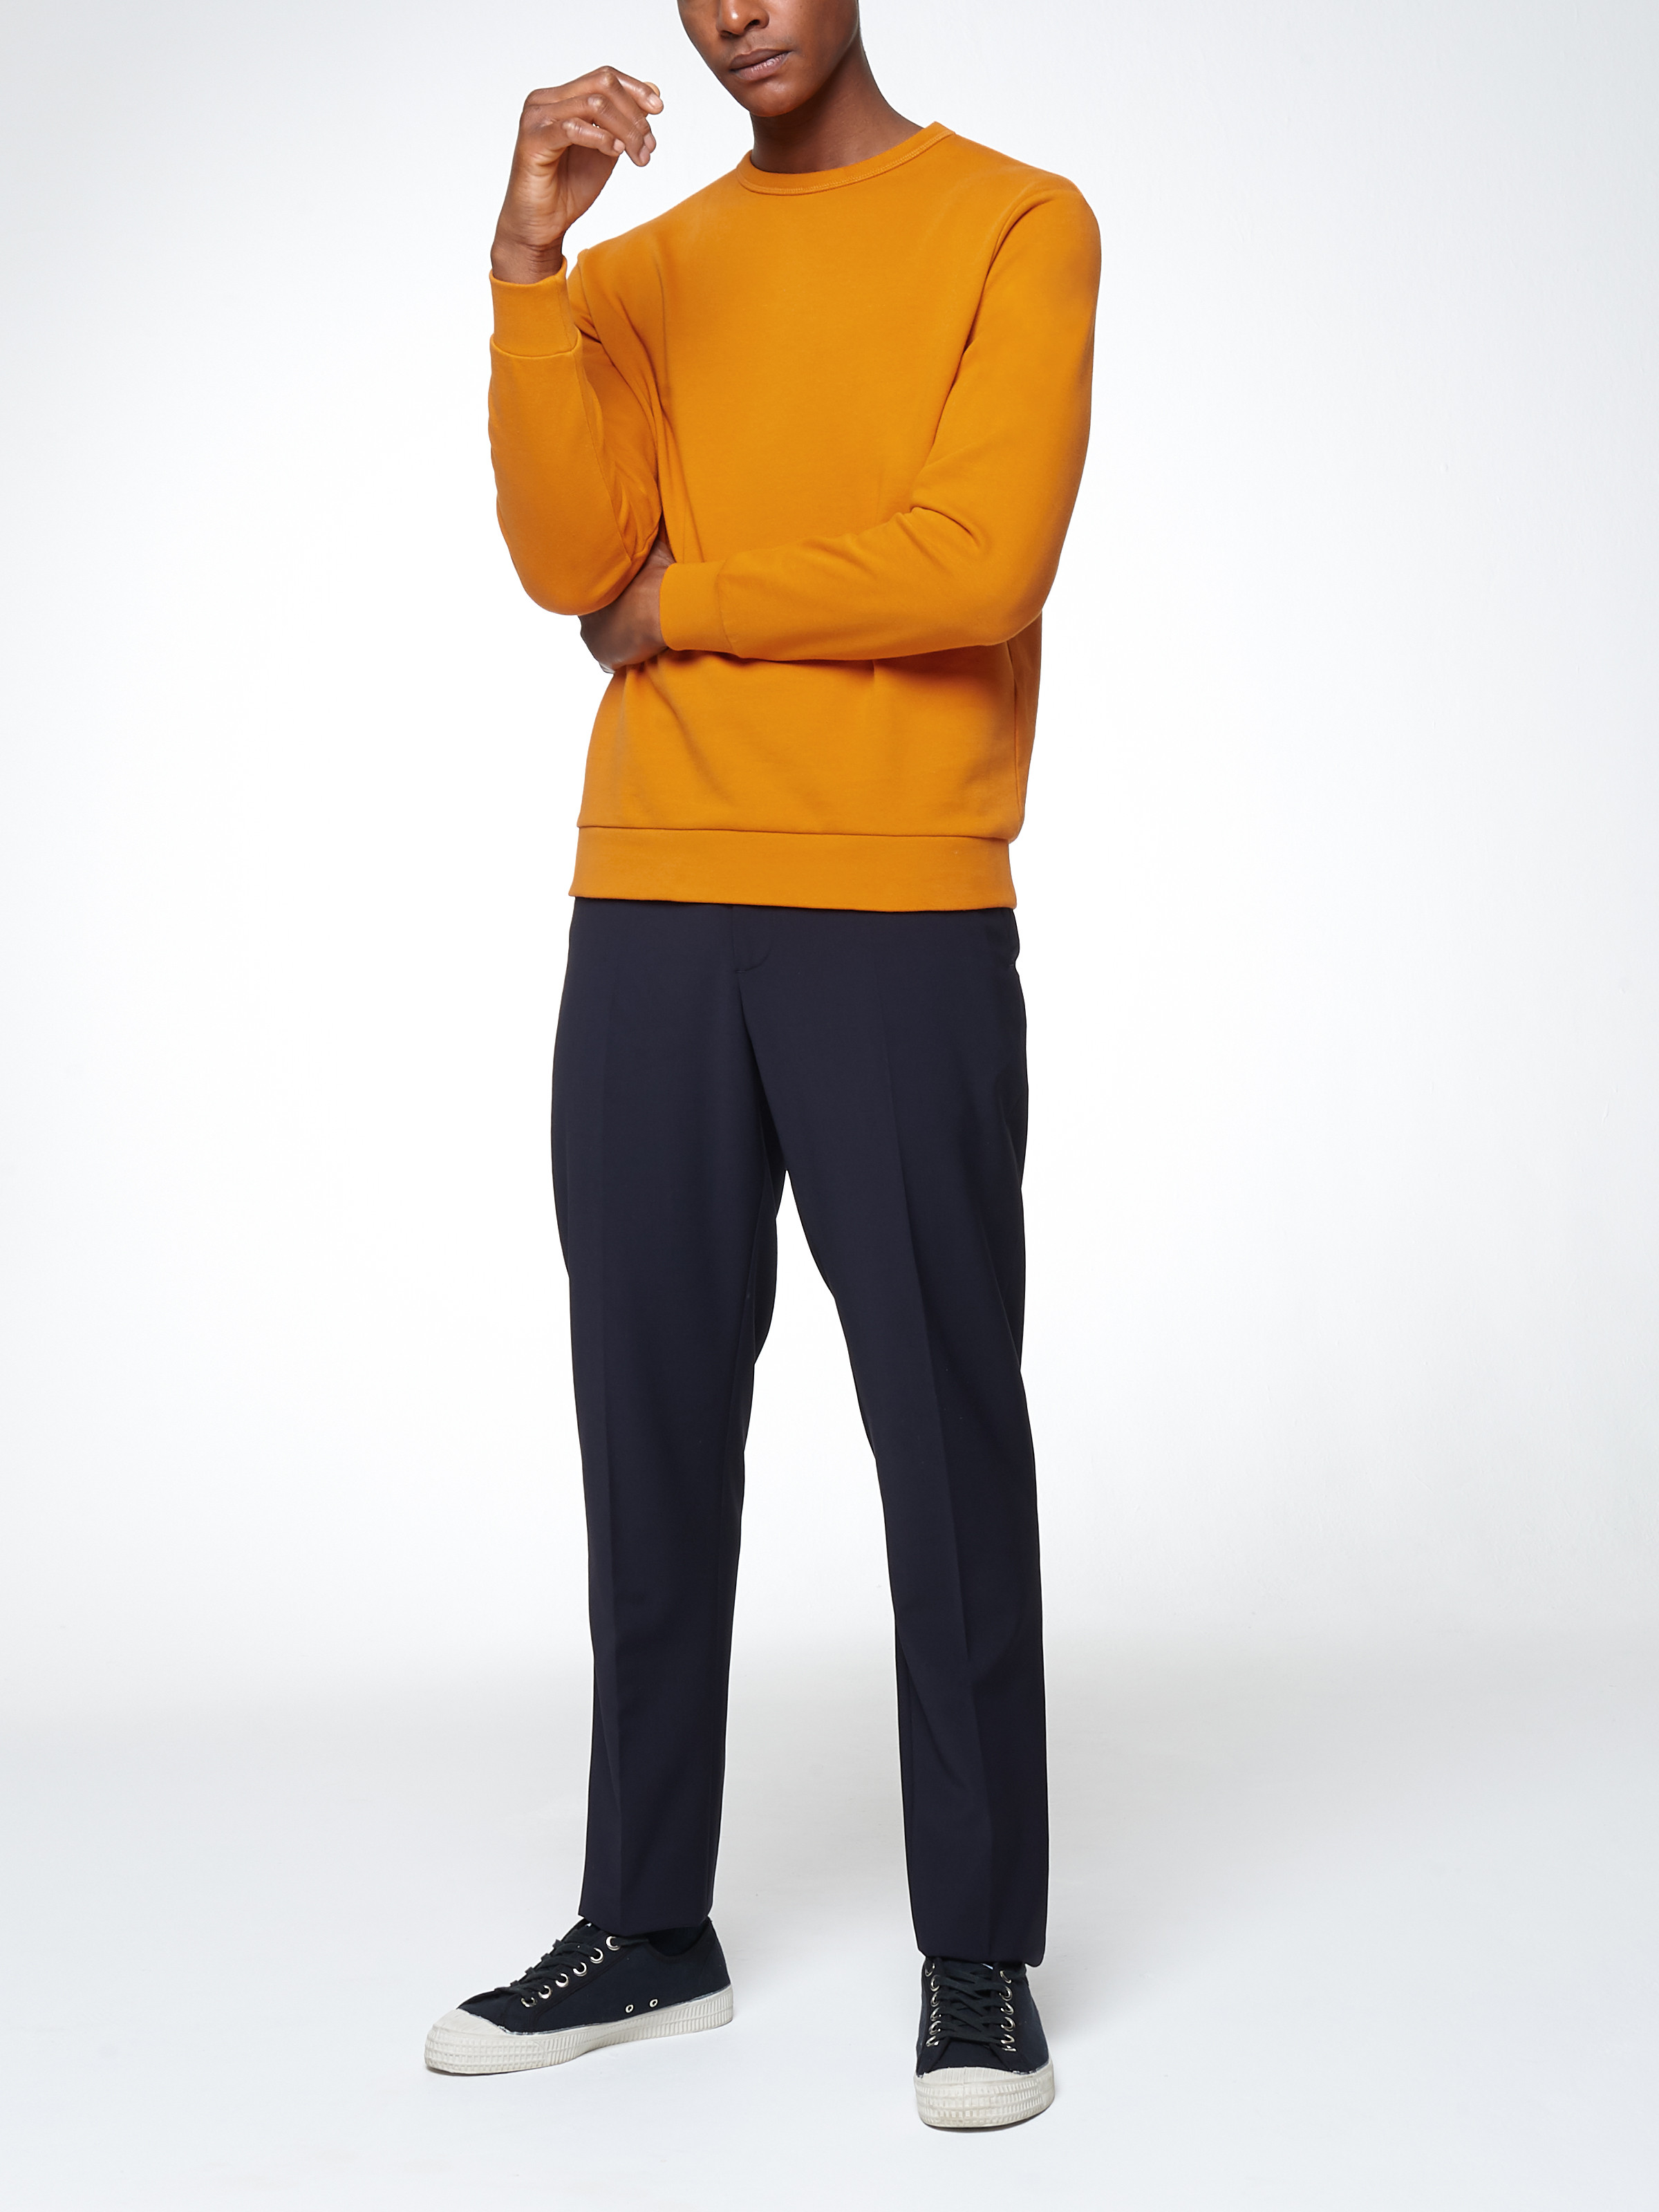 Men's outfit idea for 2021 with bold coloured sweatshirt, grey crew neck t-shirt, navy formal trousers, black trainers. Suitable for spring and autumn.